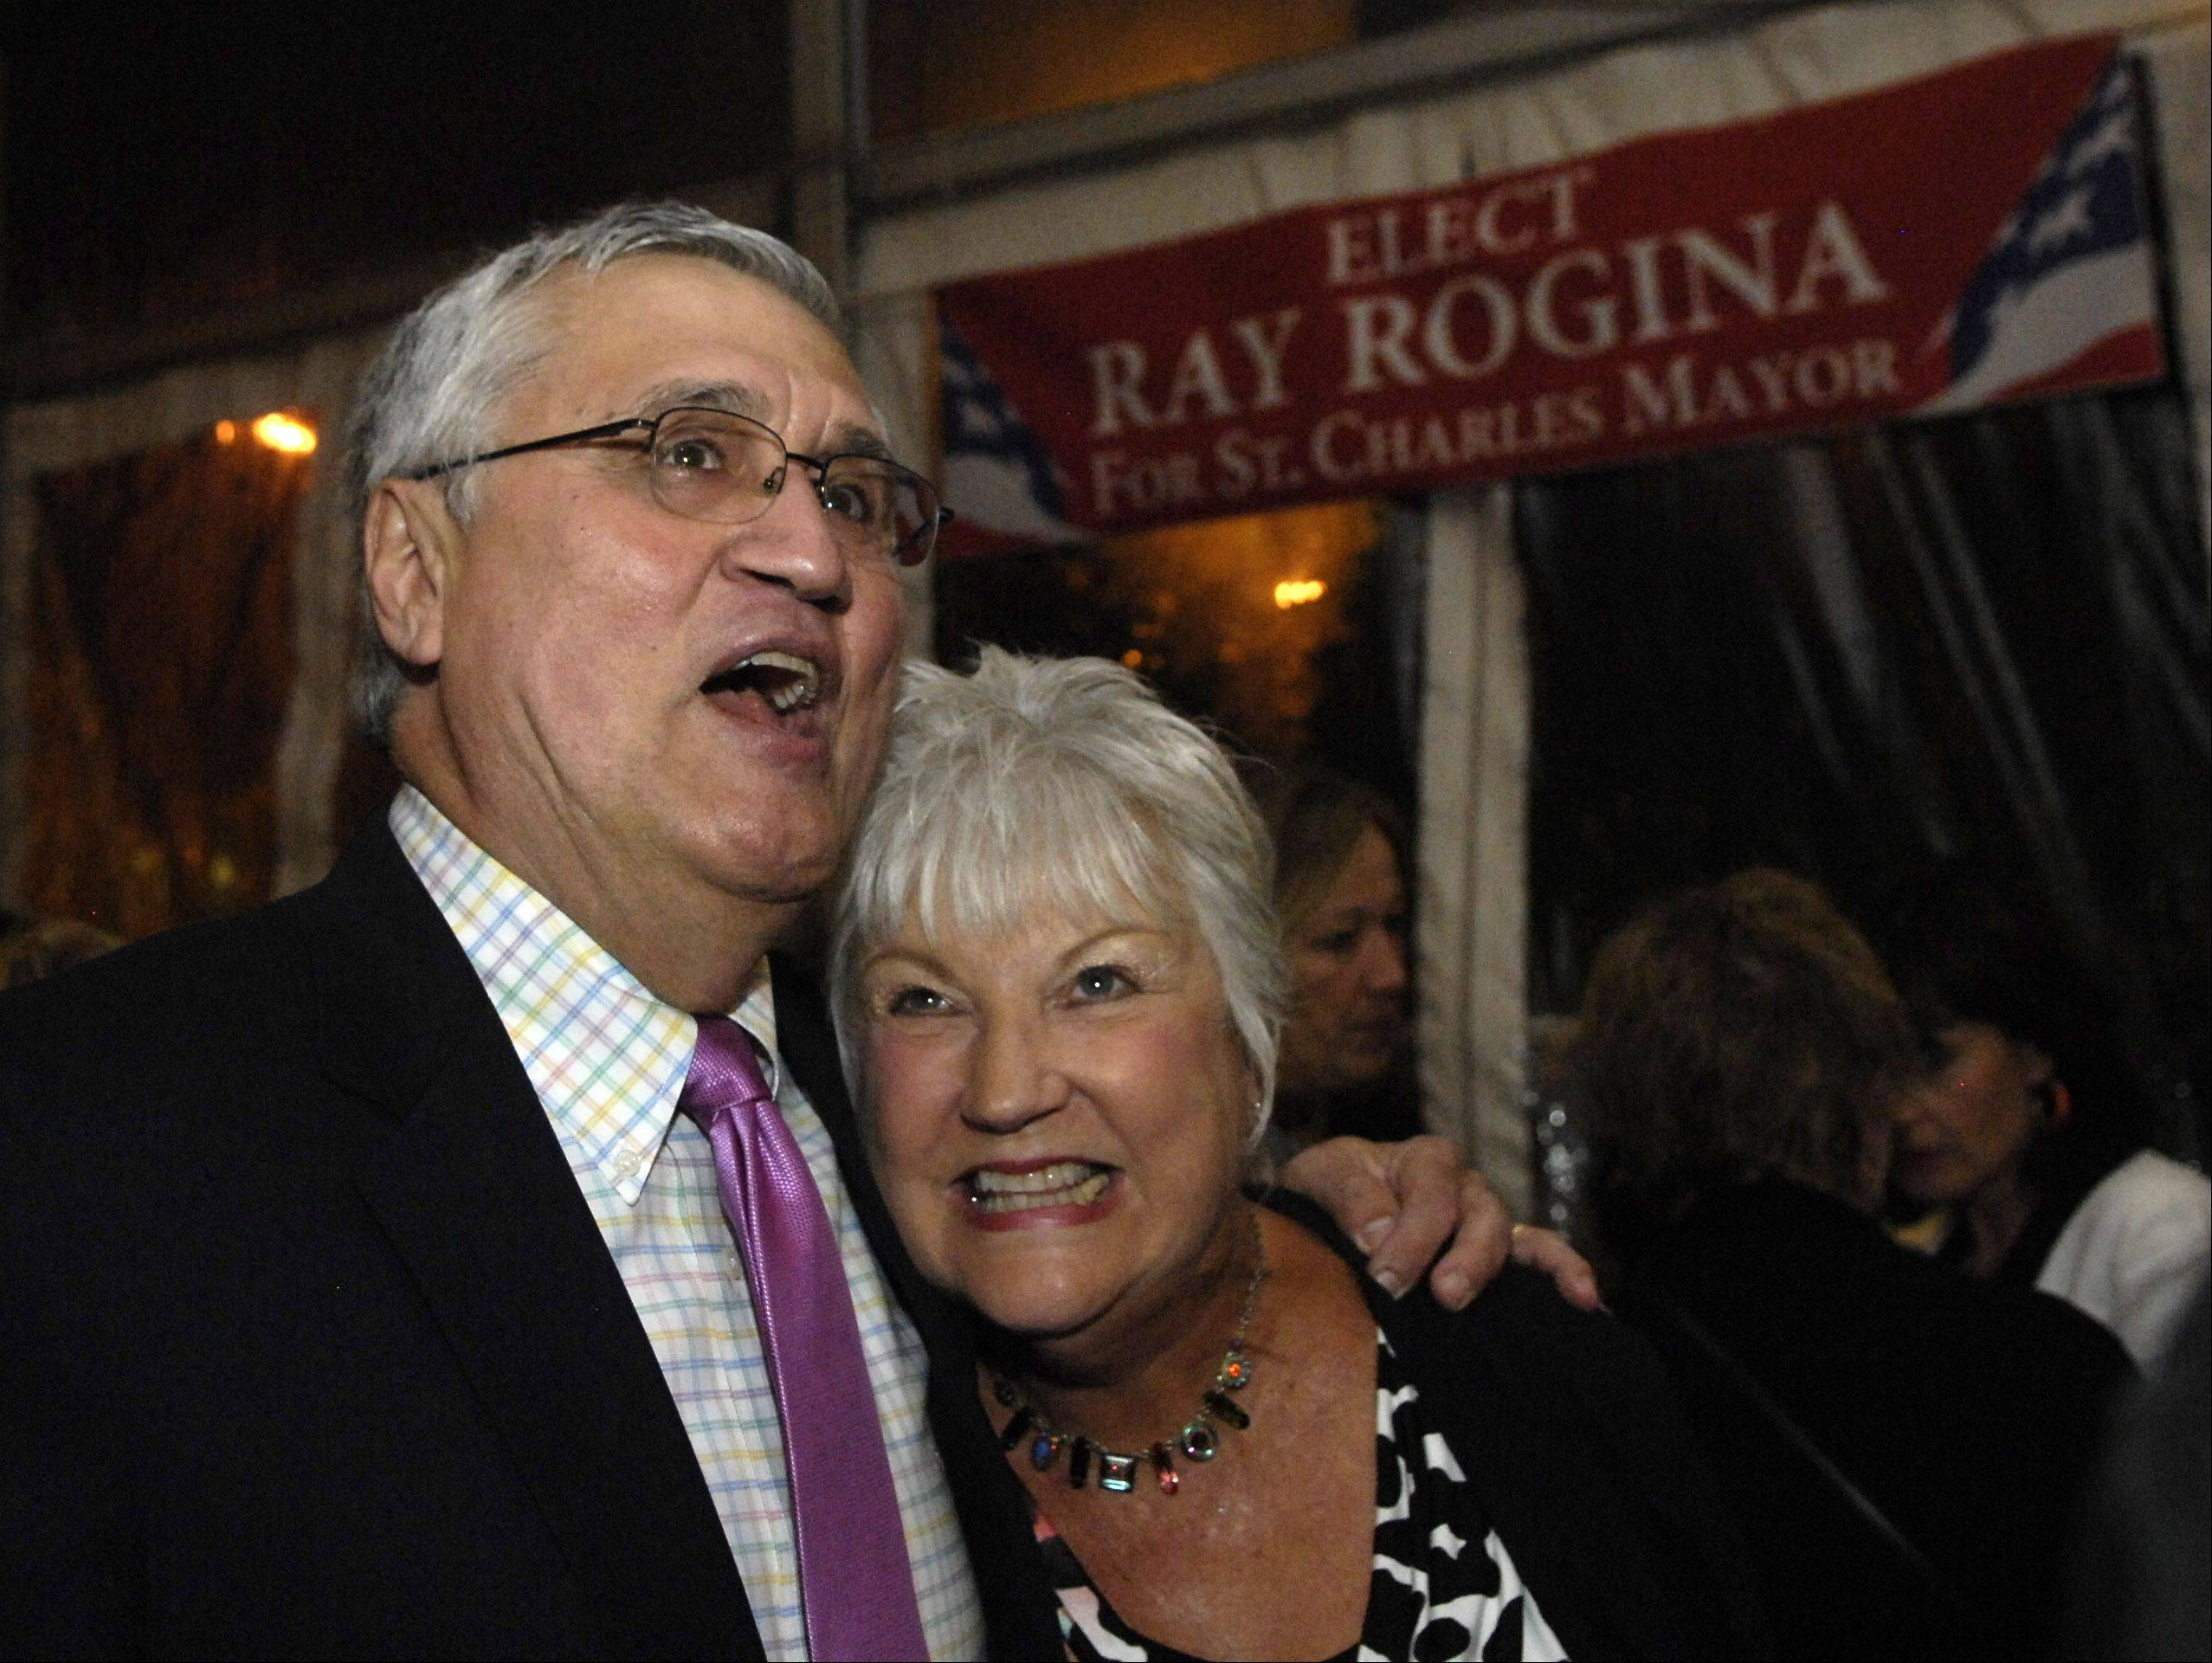 Ray Rogina gets a hug from supporter Lynn Radford of St. Charles while they check out the incoming results at The Office in St. Charles Tuesday night. Rogina was elected Mayor of St. Charles.